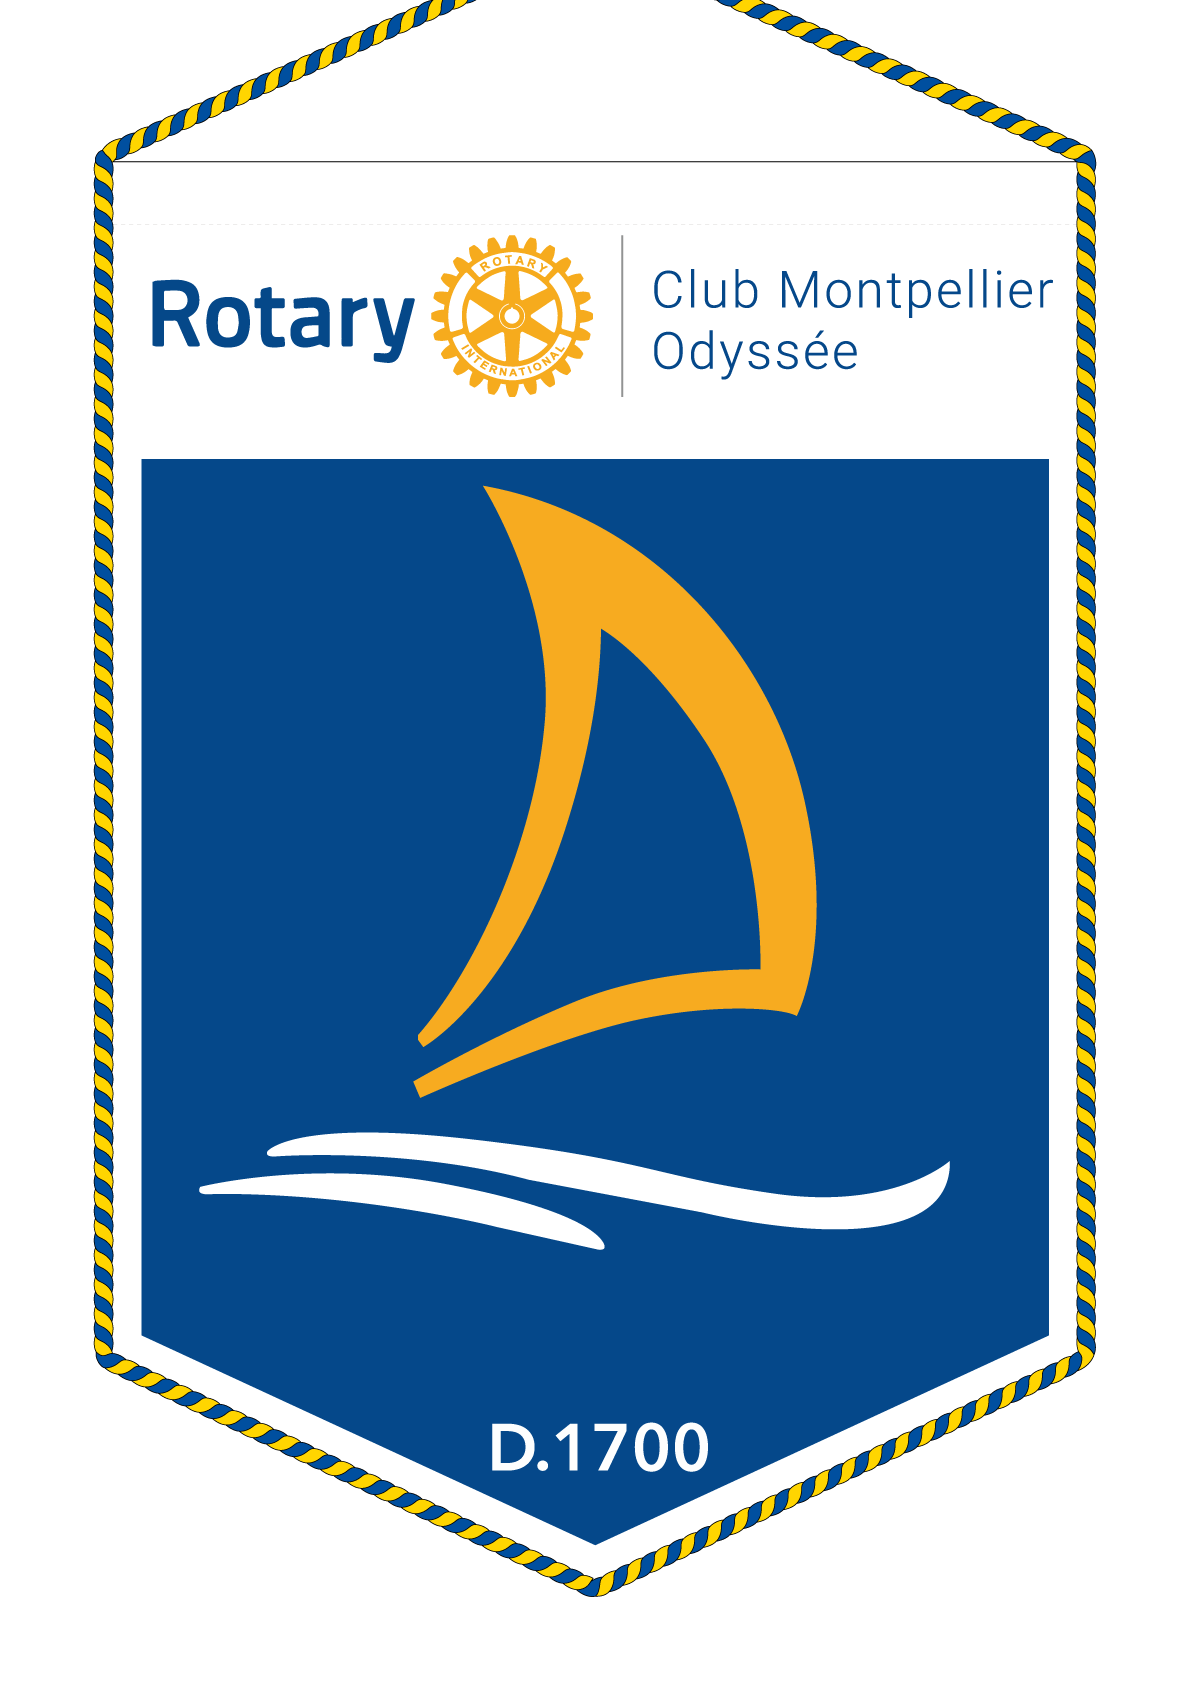 FANION ROTARY CLUB MONTPELLIER ODYSSEE